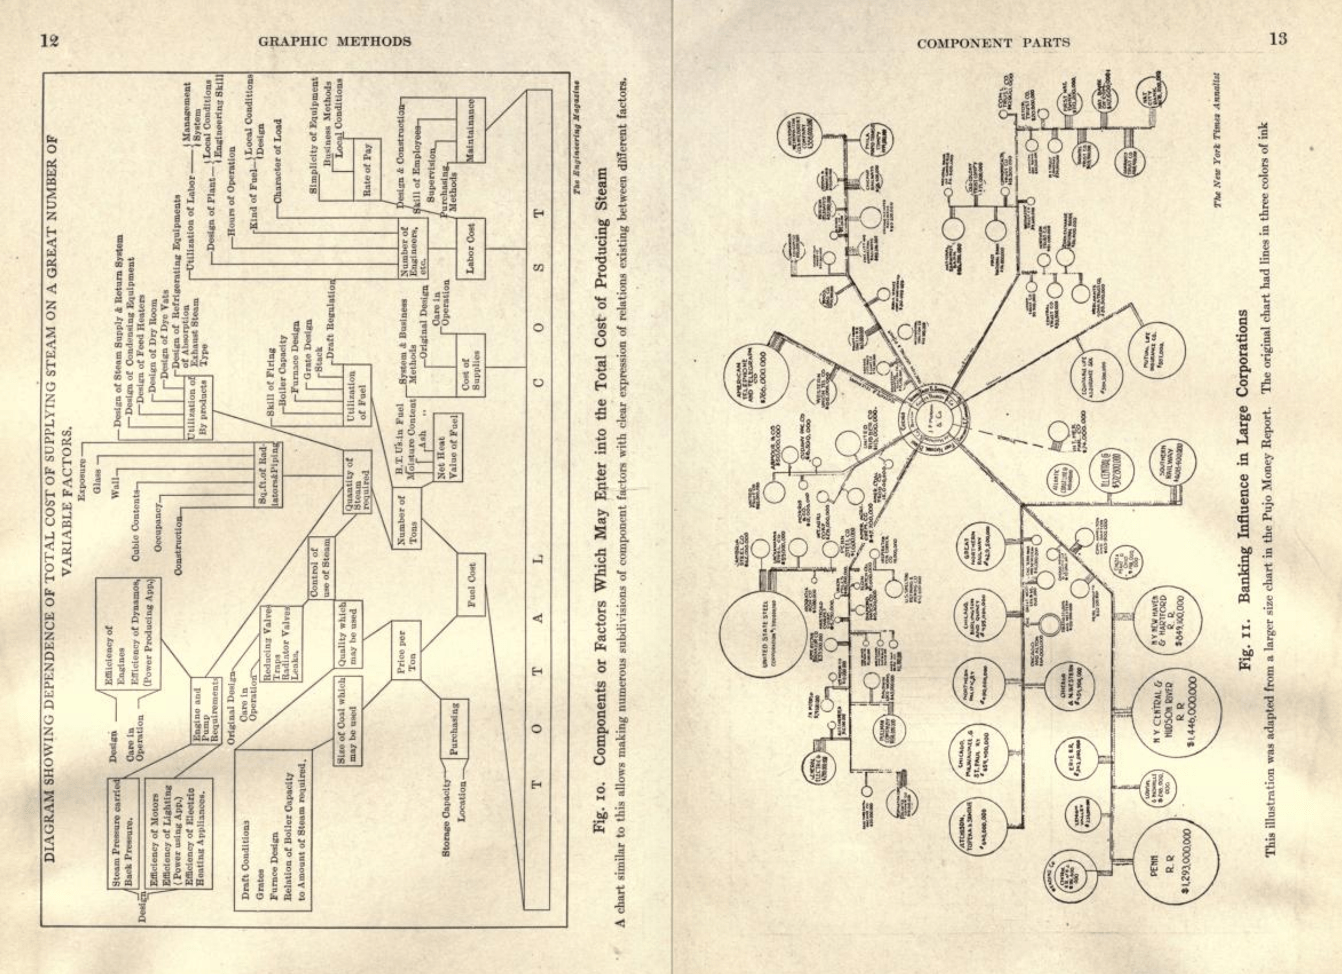 hight resolution of the lesser known synonyms organigram and organogram came into use in the 1960s